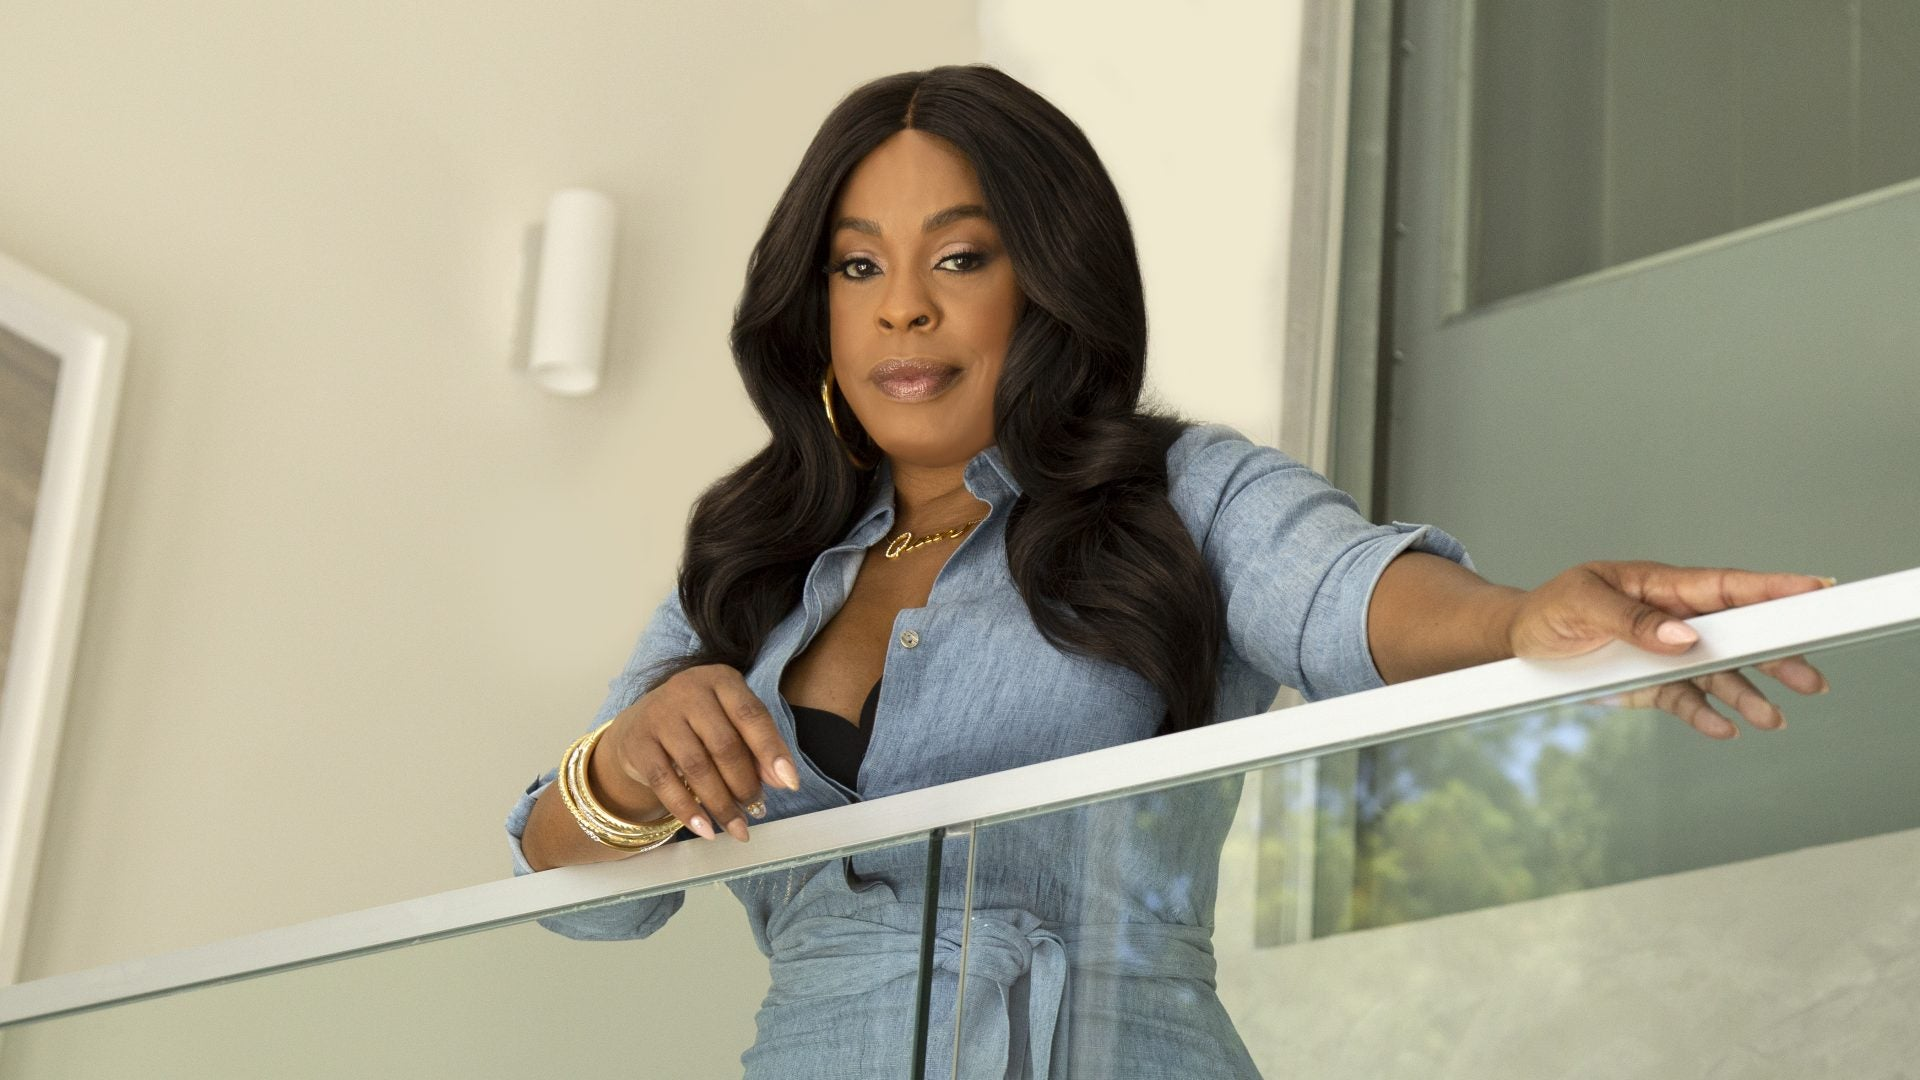 Niecy Nash Witnessed Her Mother's Domestic Violence Incident As A Child